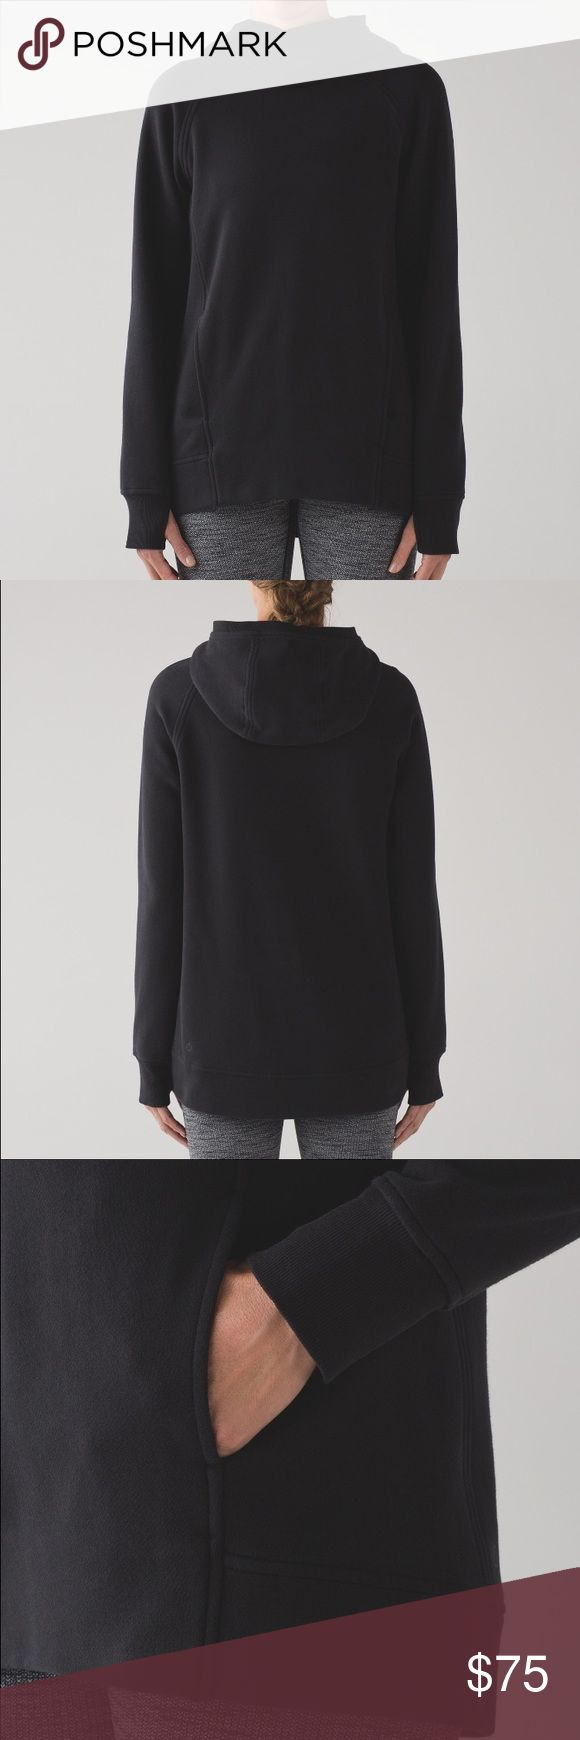 Lululemon Hoodie I do not trade. Classic pullover hoodie. lululemon athletica Tops Sweatshirts & Hoodies